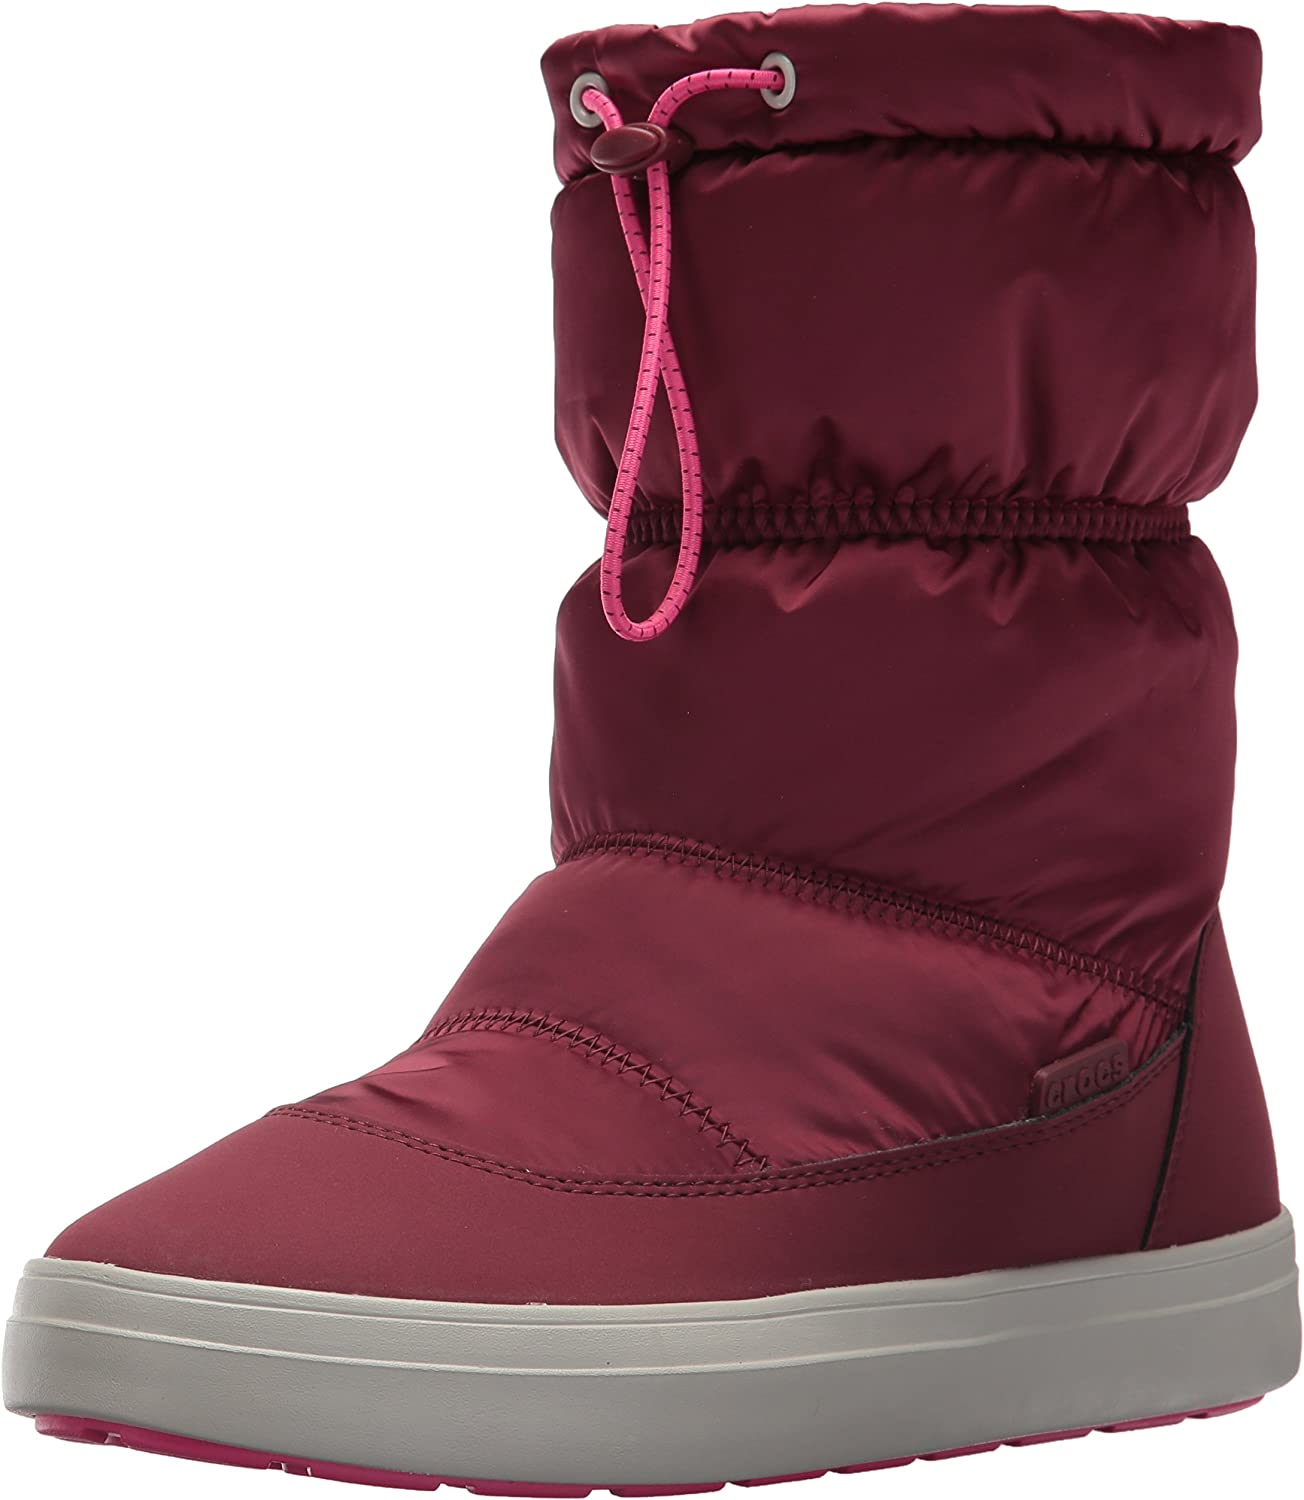 Crocs Women's LodgePoint Shiny Pull-on W Snow Boot, 4 us